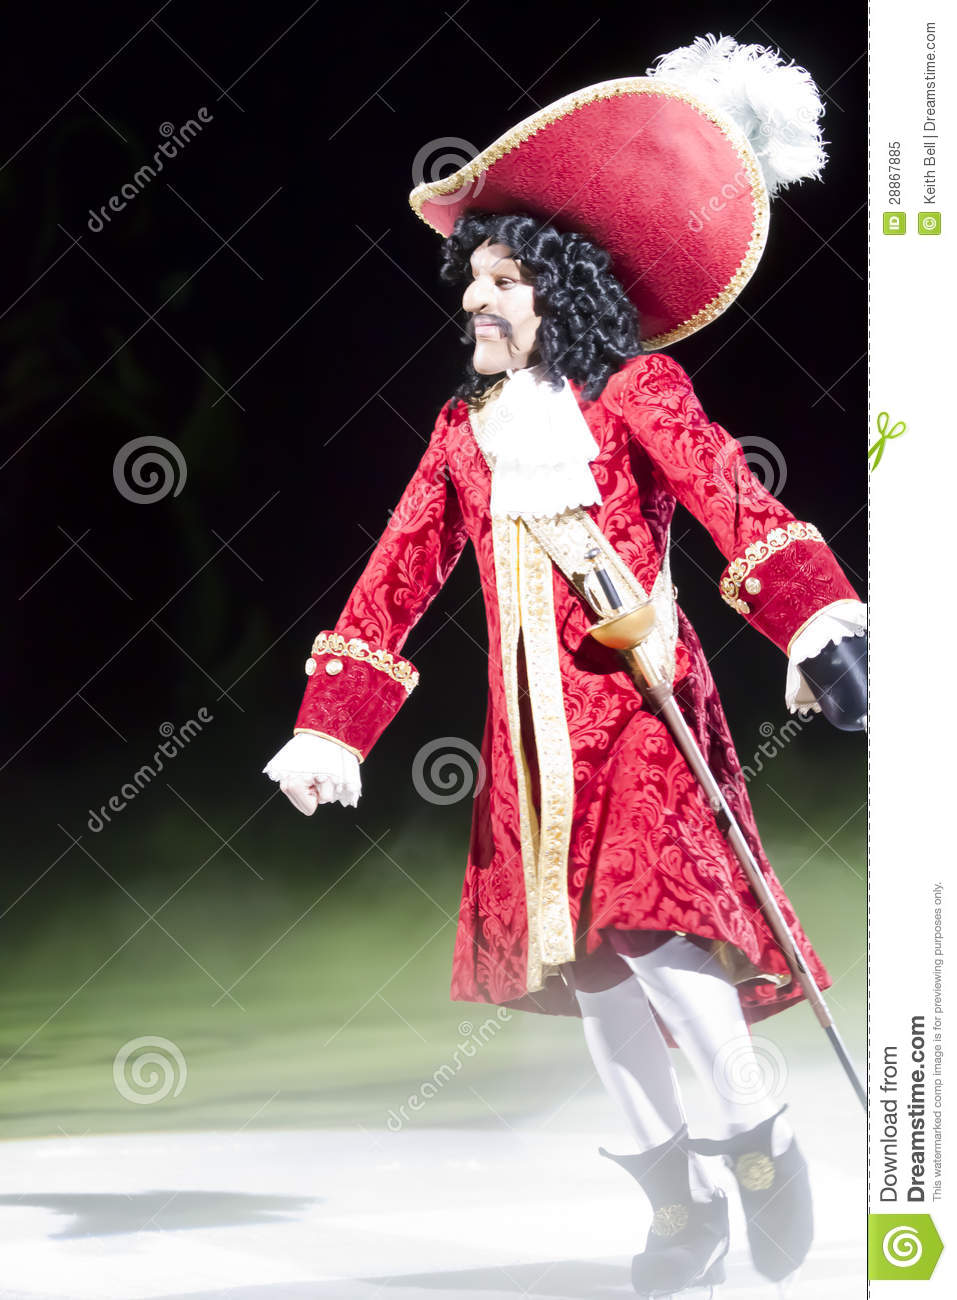 331 Captain Hook Photos Free Royalty Free Stock Photos From Dreamstime